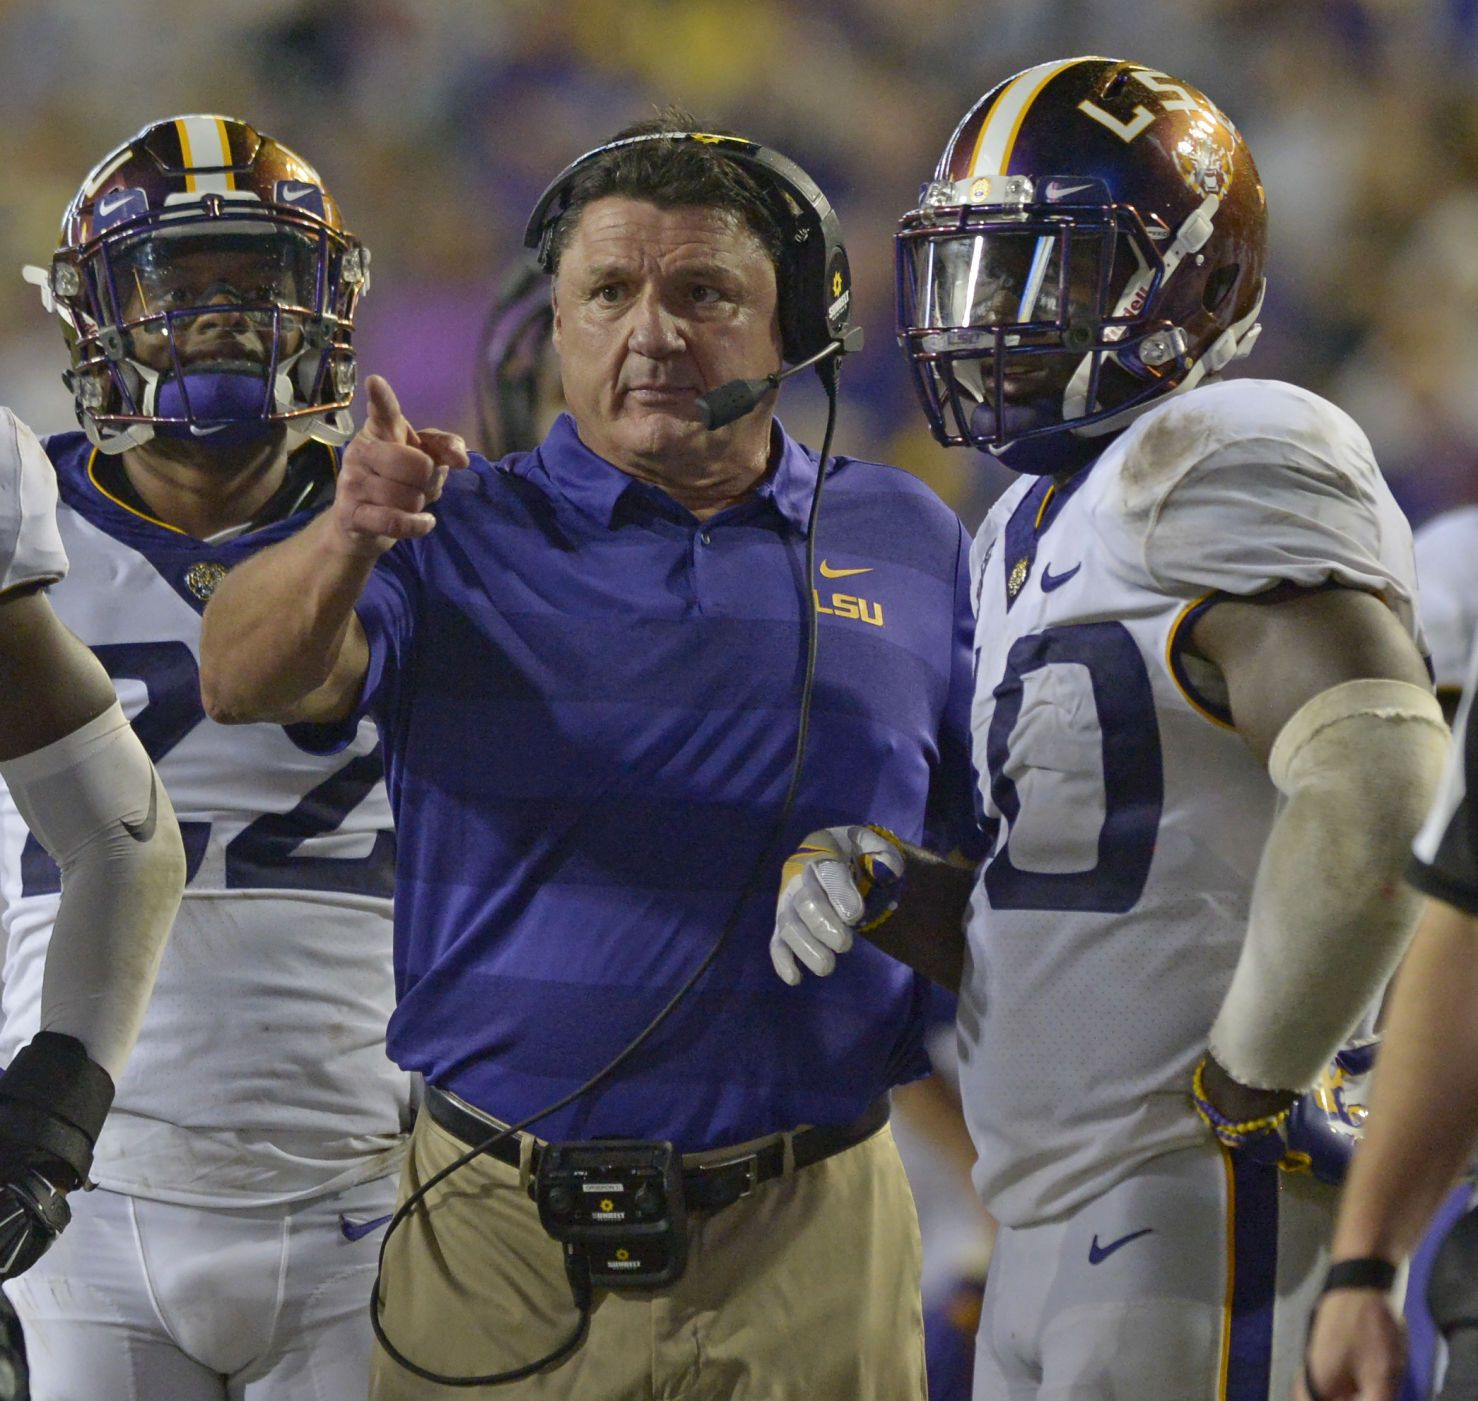 Lsu Coach Ed Orgeron We Re Better Equipped Than Ever To Play Alabama Lsu Lsu Fans Lsu Tigers